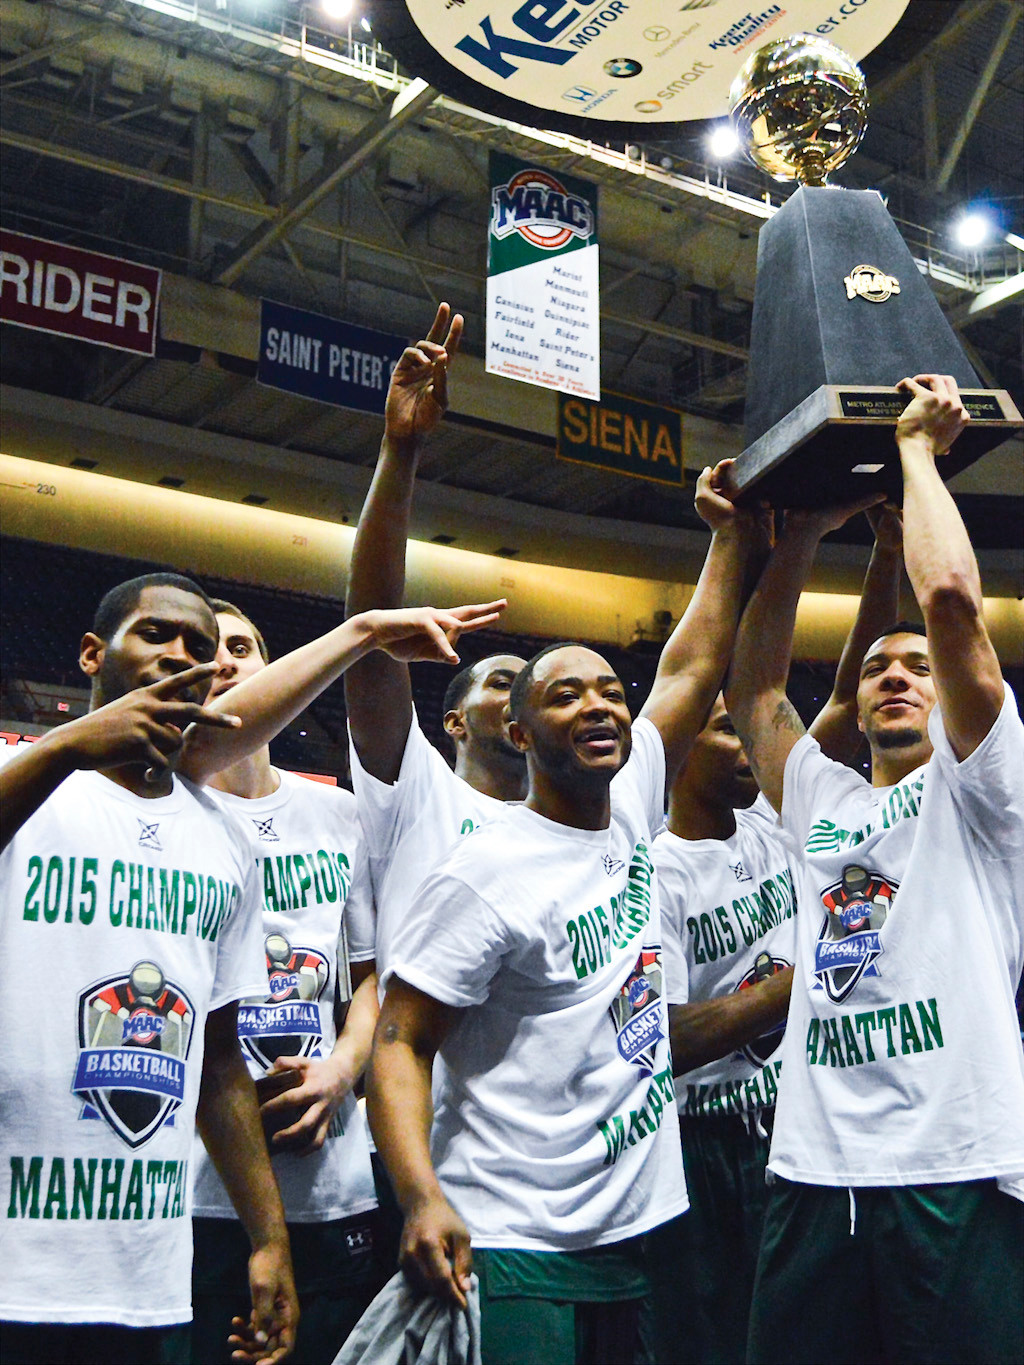 Manhattan College basketball players lift the MAAC Championship trophy after defeating Iona 79-69, securing a spot in the NCAA tournament in Albany on Sunday.